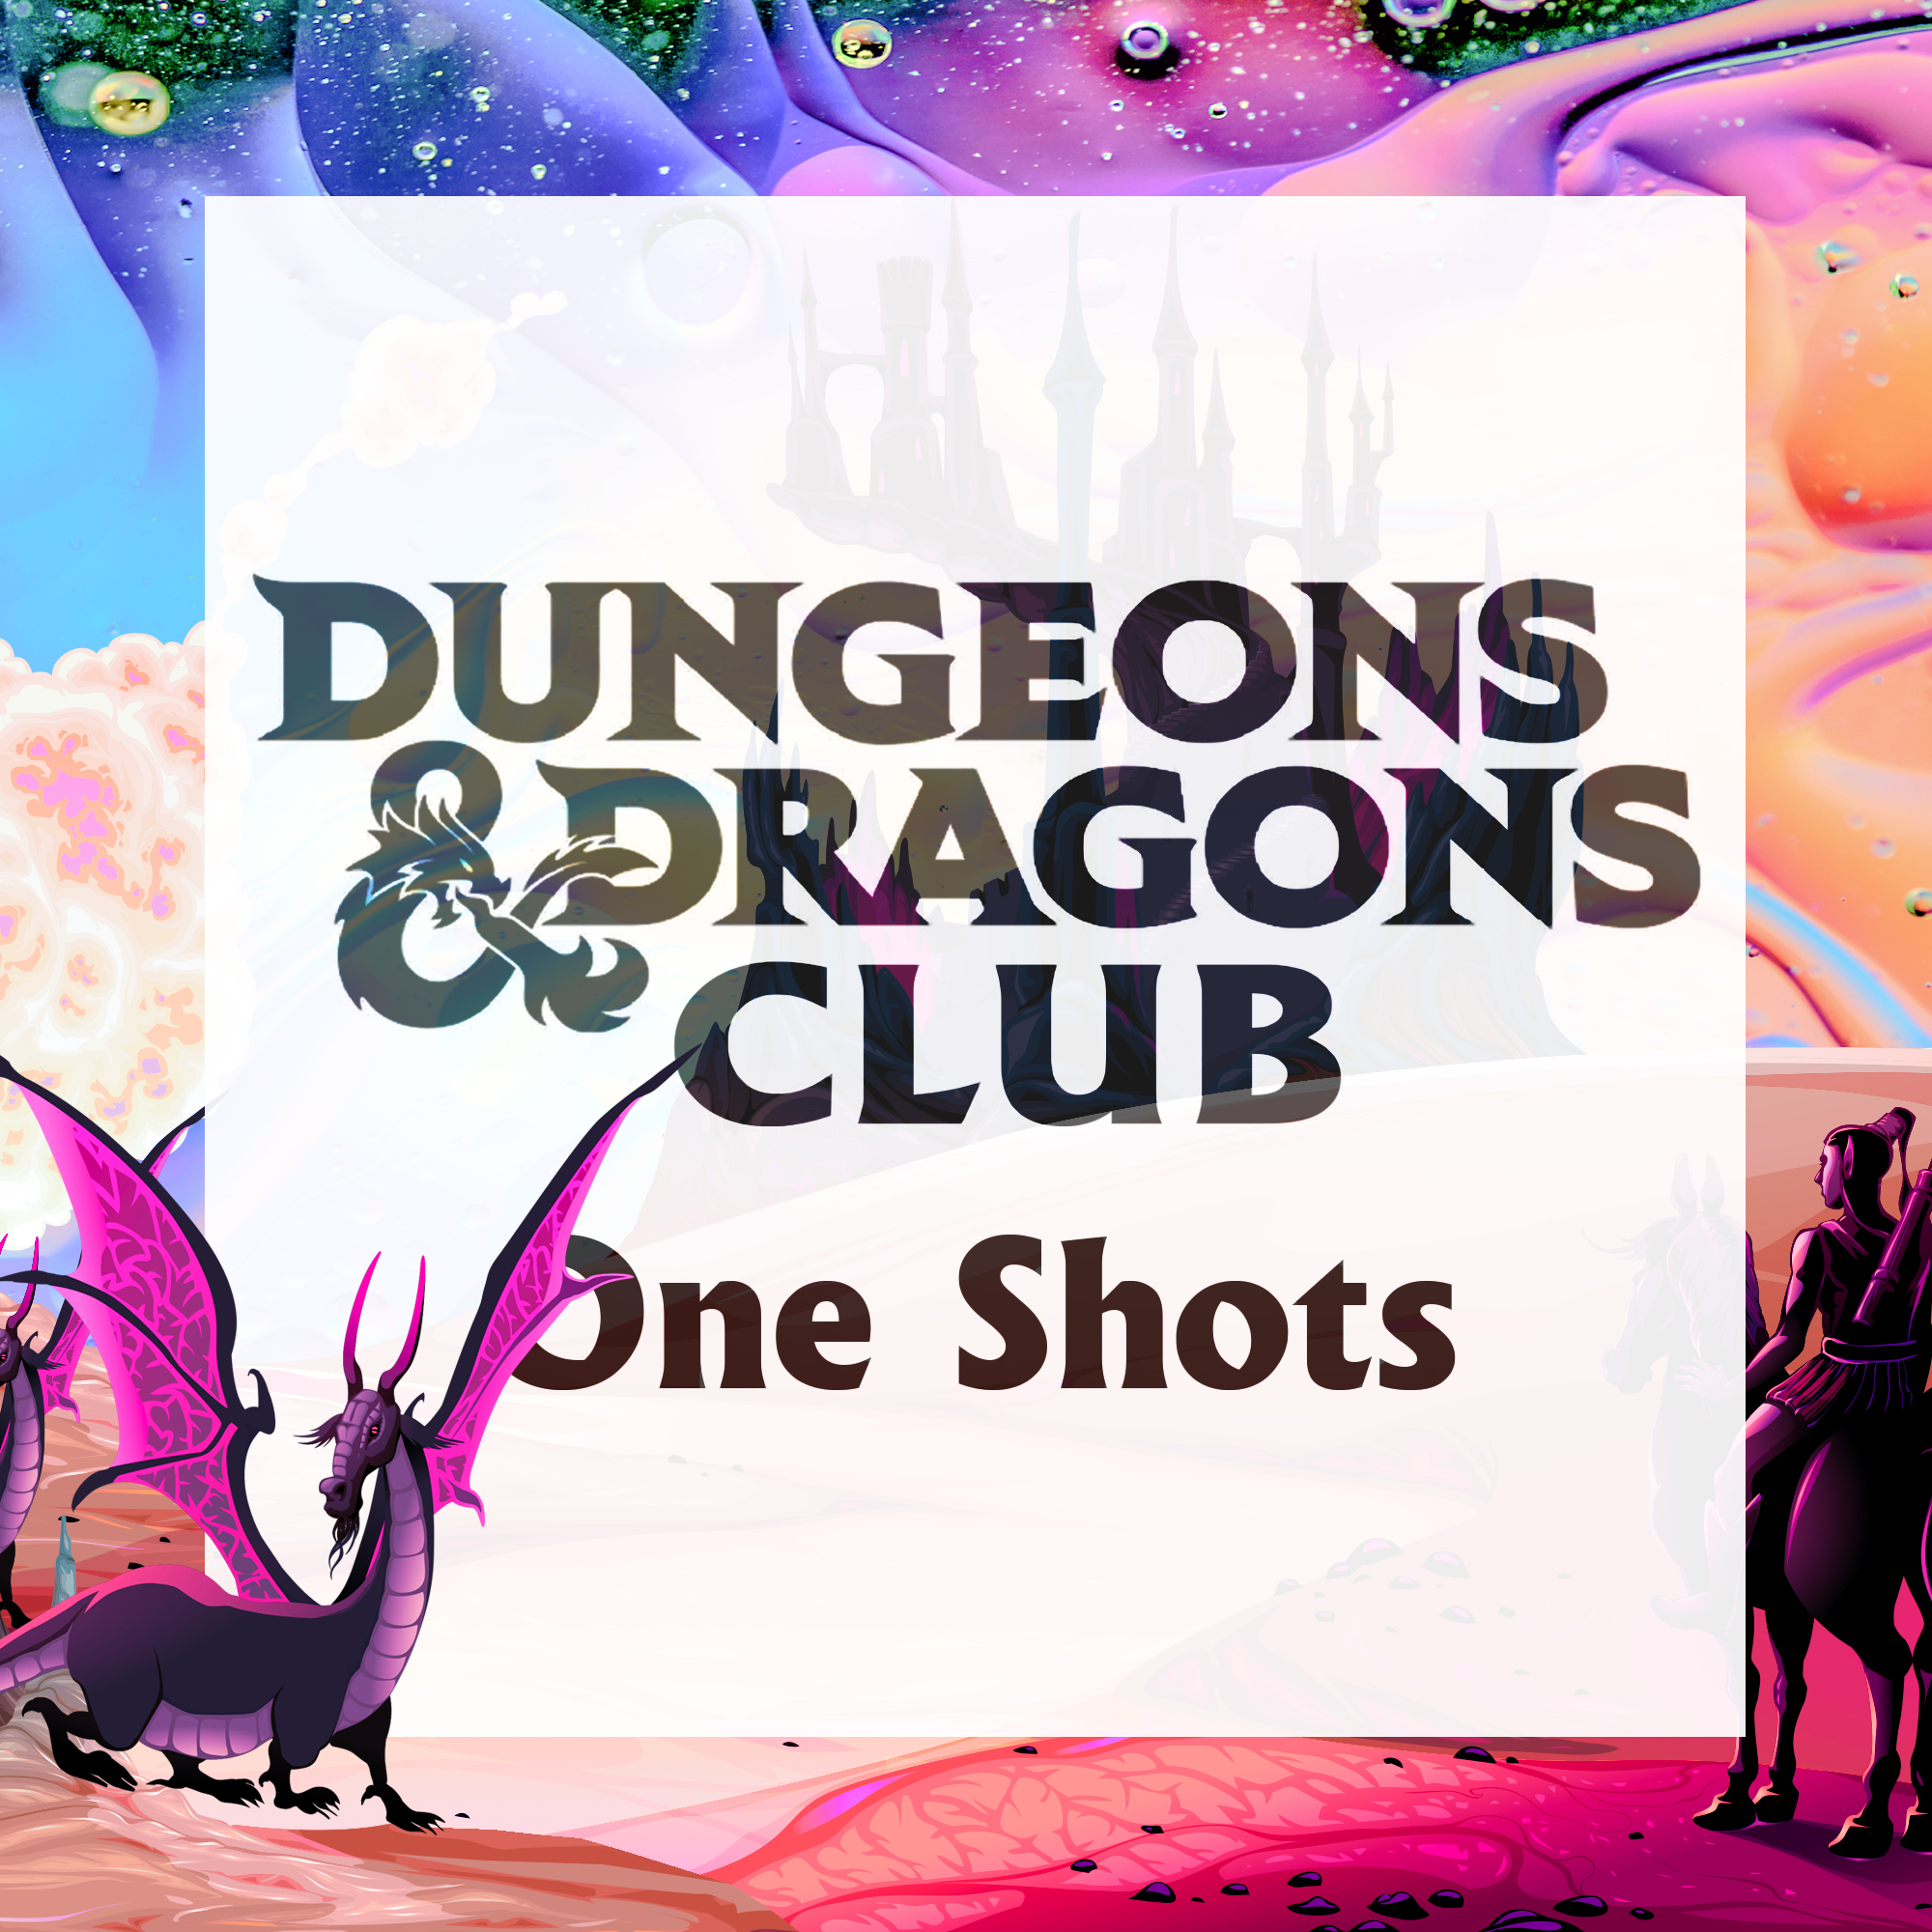 Dungeons & Dragons Club: Summer One Shots!